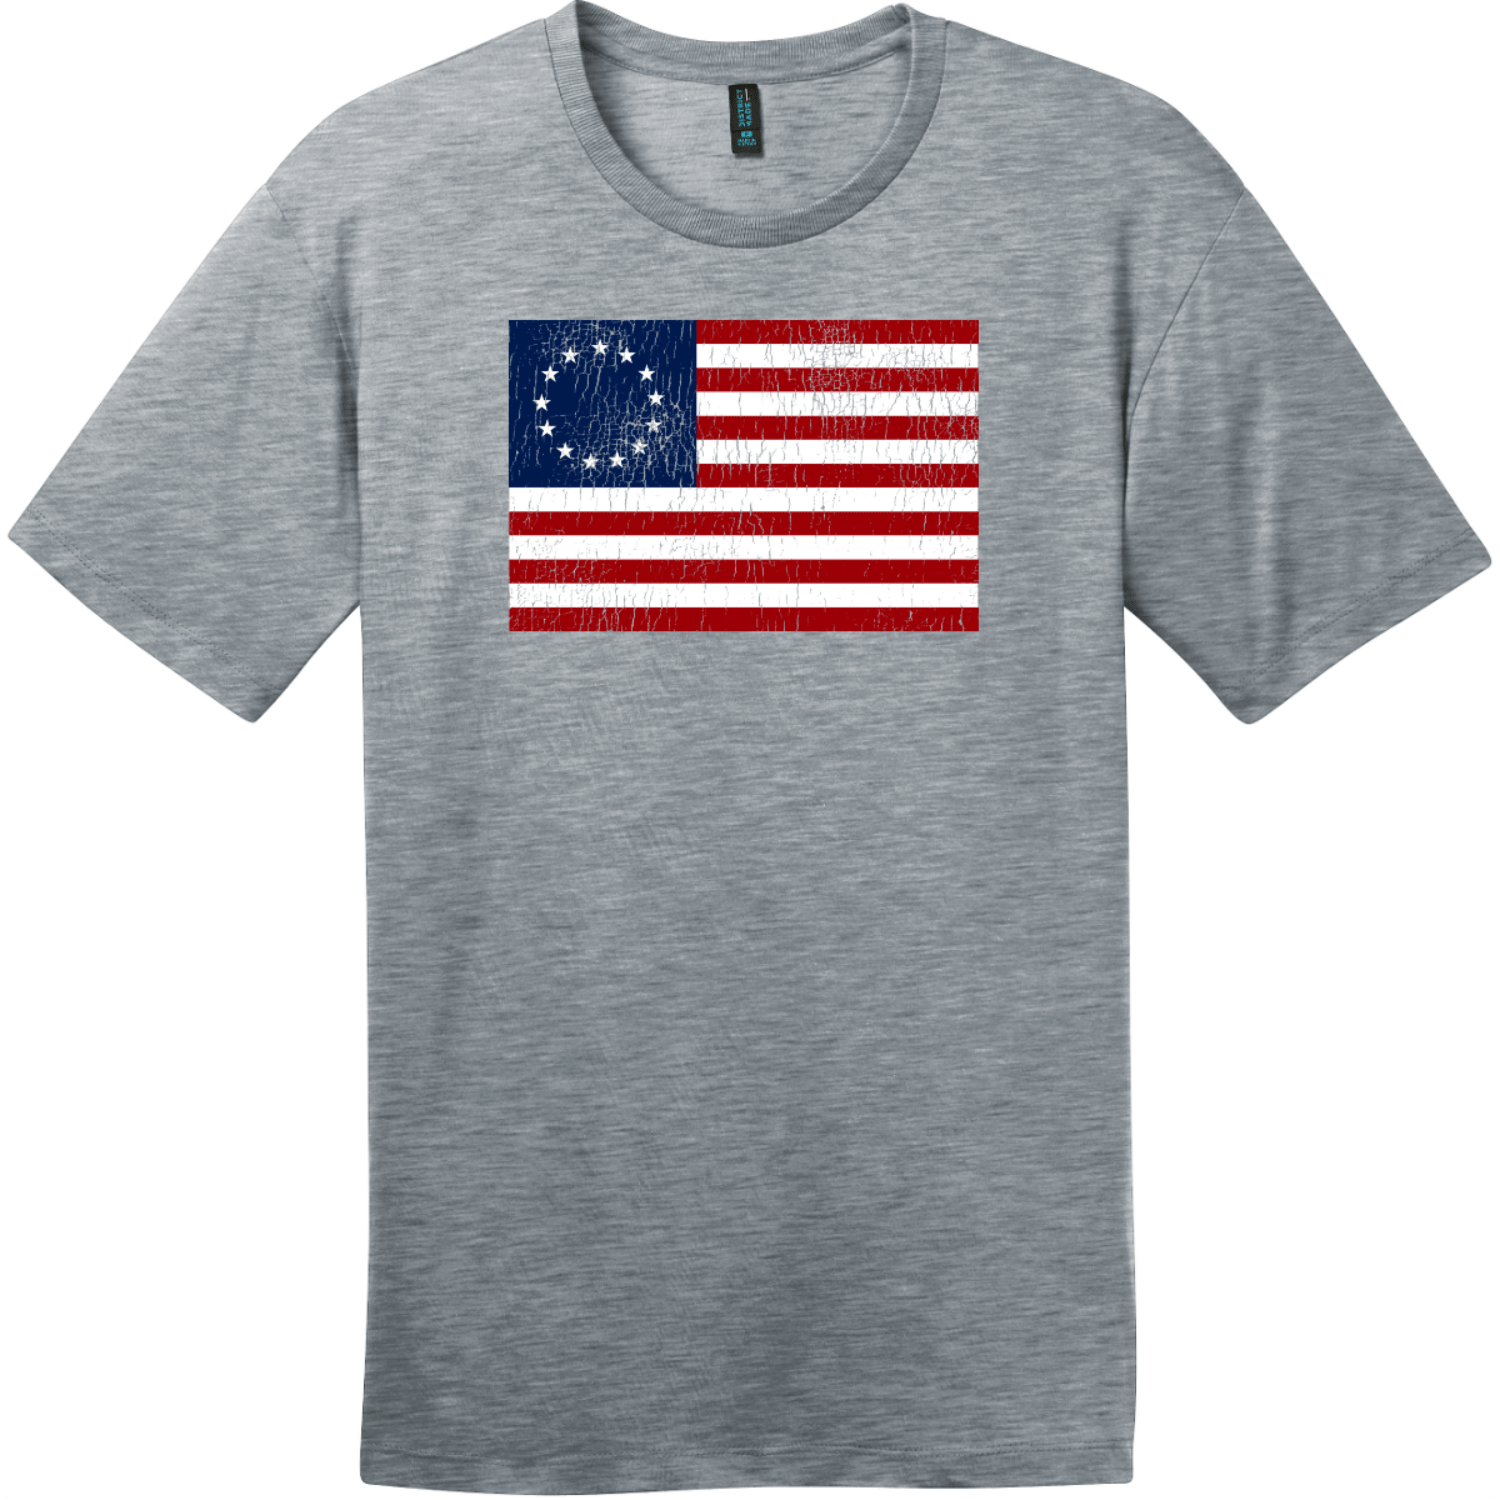 Betsy Ross American Flag Vintage T-Shirt Heathered Steel District Perfect Weight Tee DT104